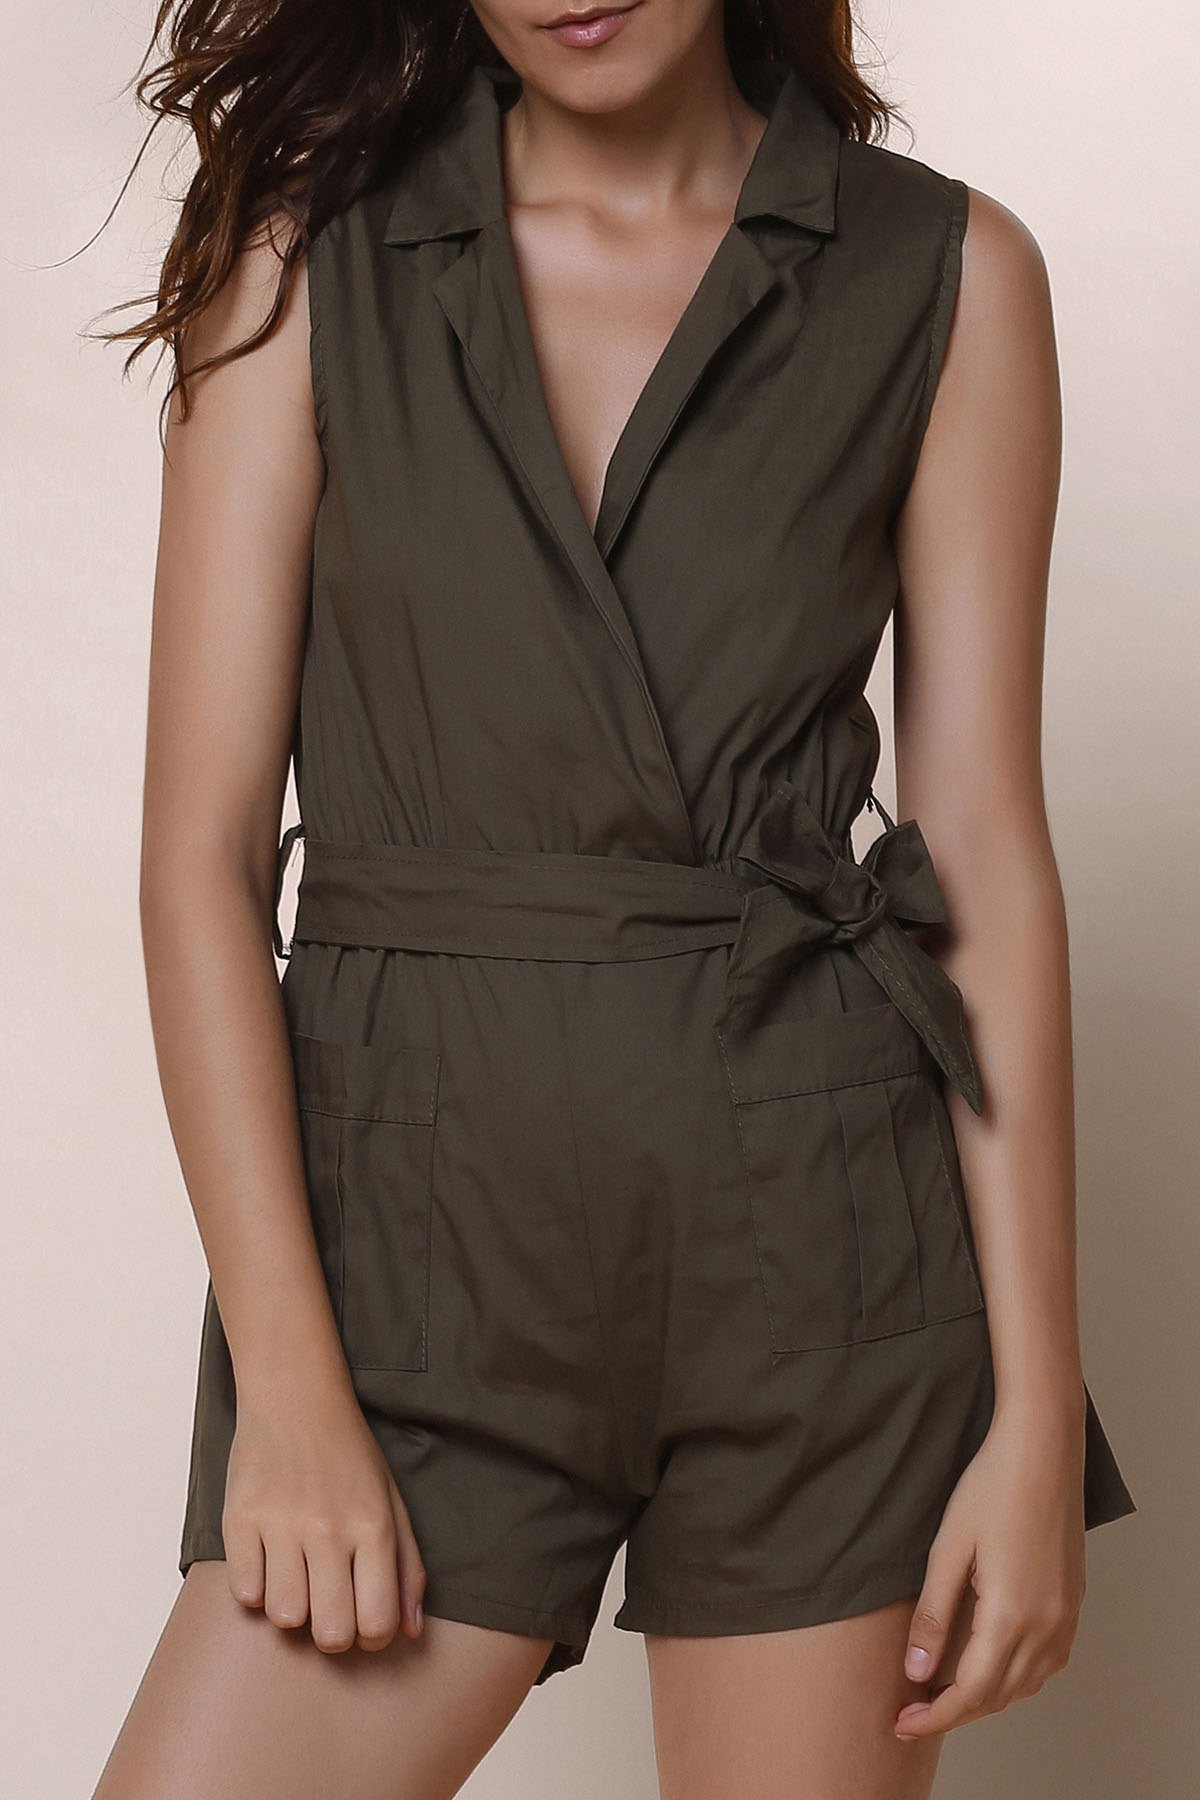 Online Casual Turn-Down Collar Solid Color Romper For Women